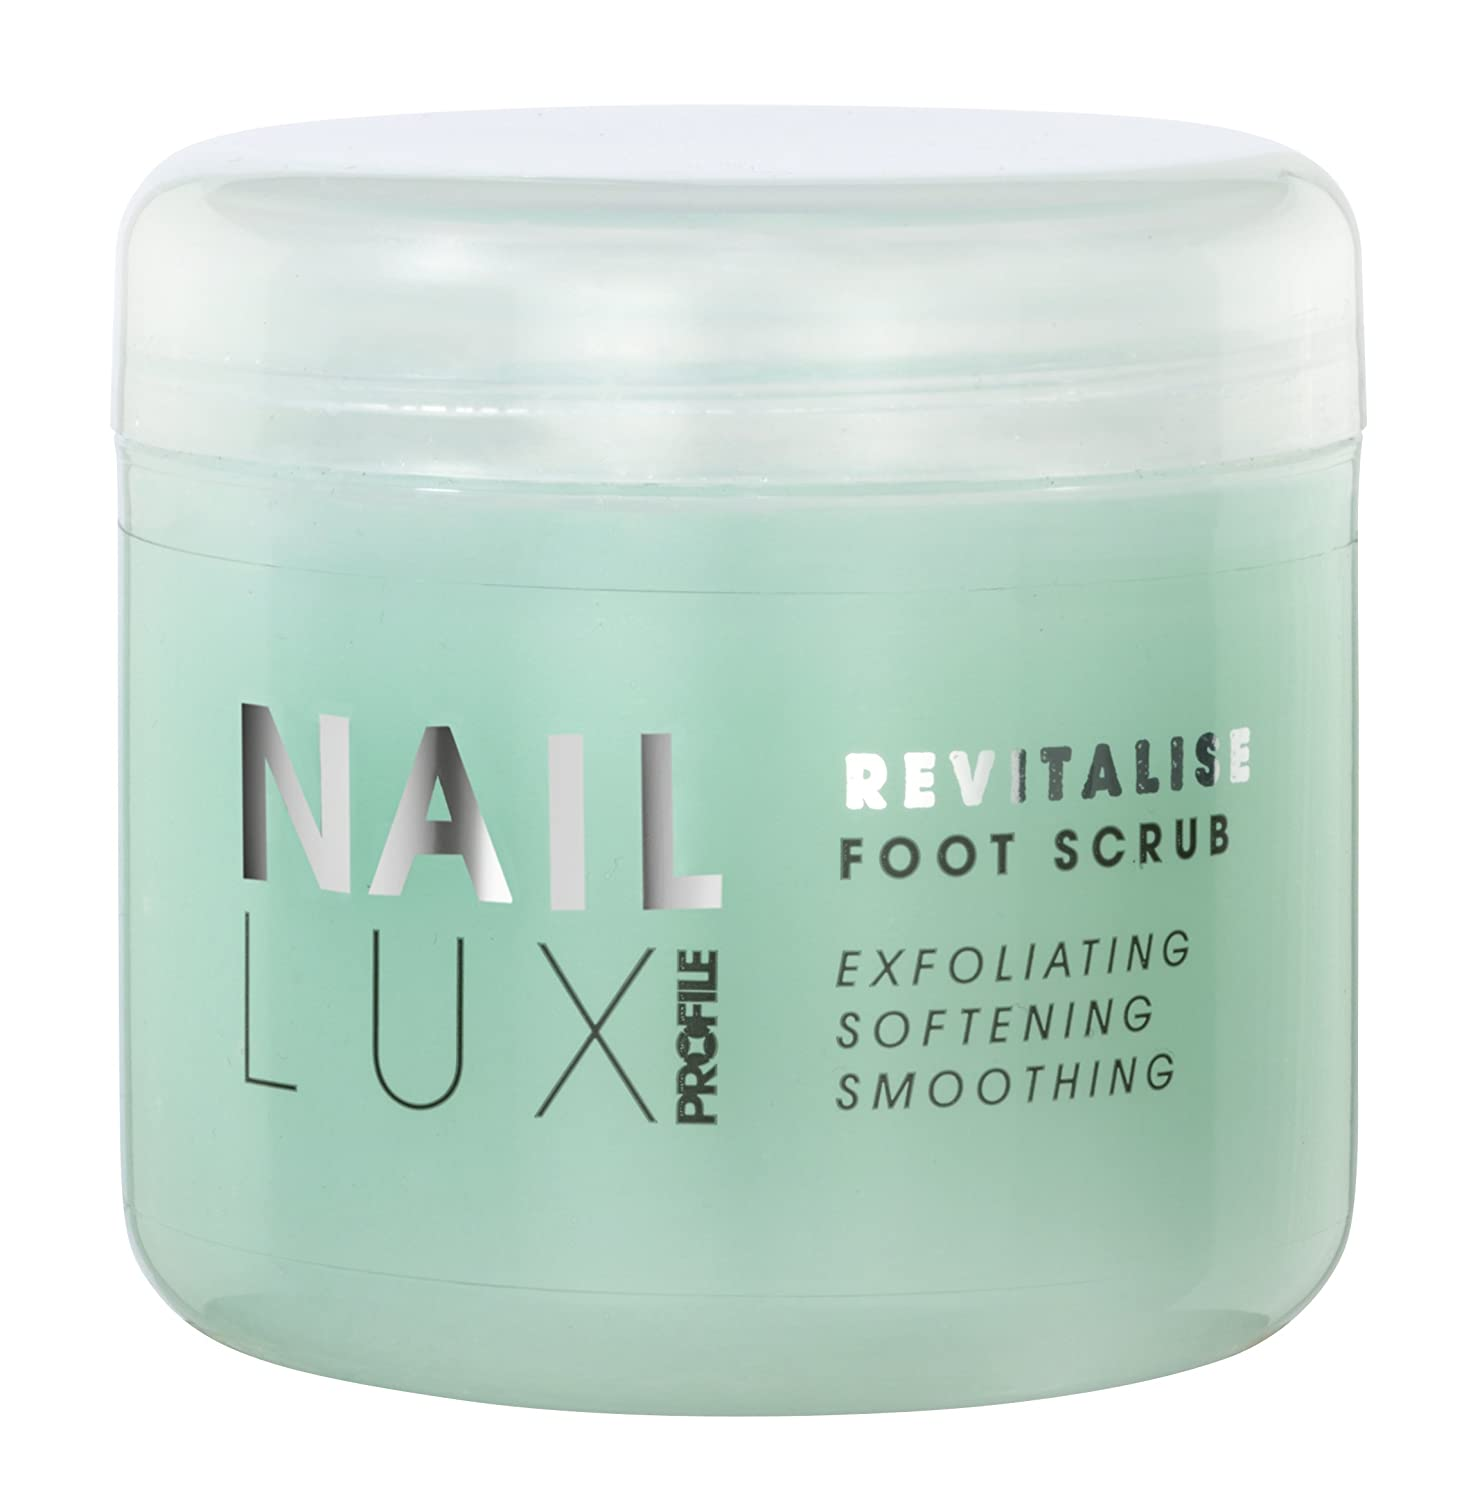 salonsystem NailLux Revitalise Foot Scrub 300 ml 0222402